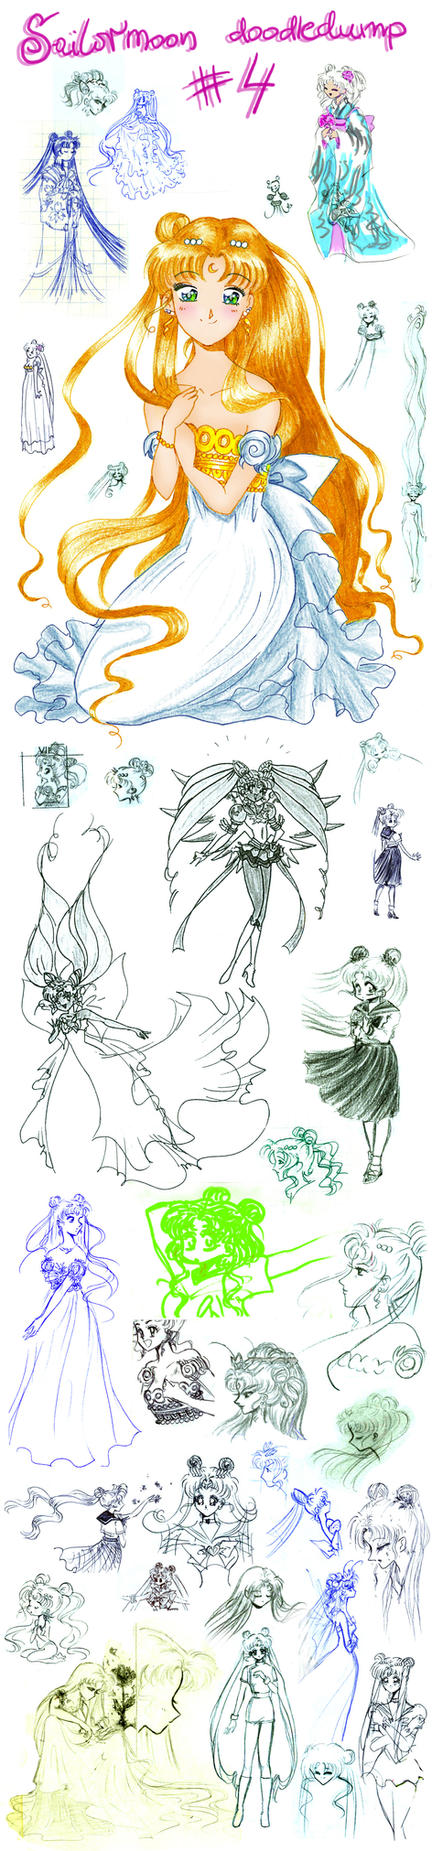 Sailormoon doodledump 4 by NitroFieja